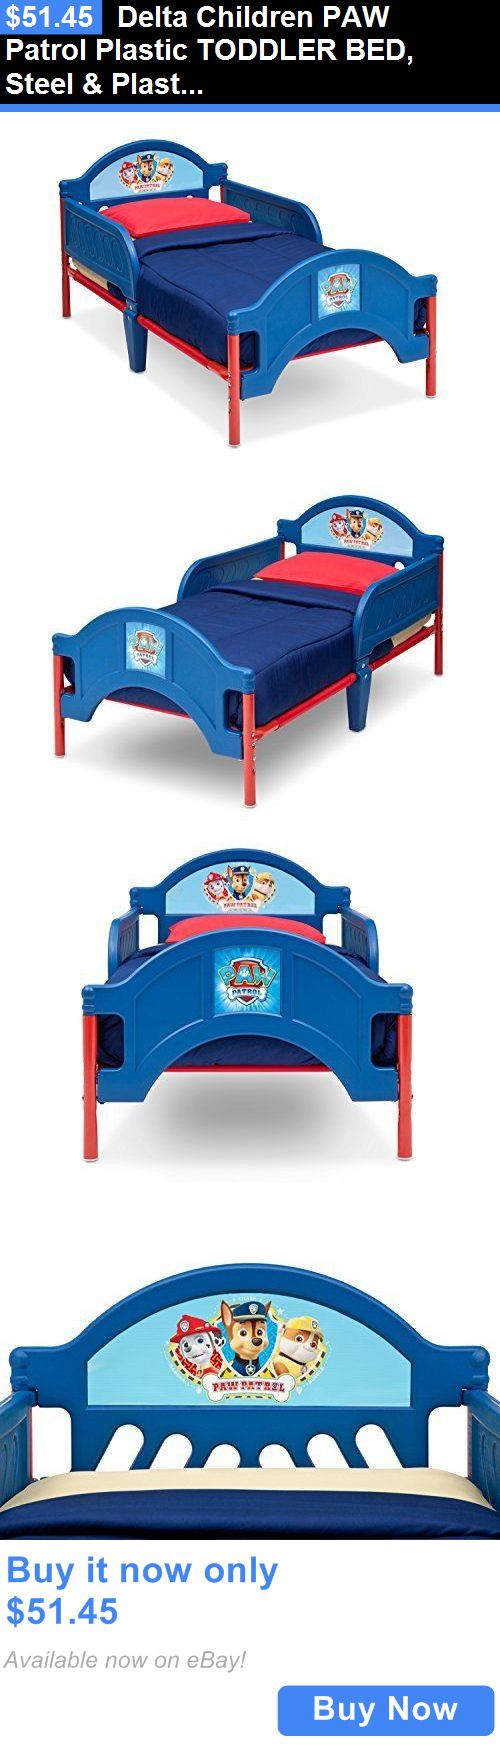 Kids Furniture: Delta Children Paw Patrol Plastic Toddler Bed, Steel And Plastic Frame Toddler Bed BUY IT NOW ONLY: $51.45